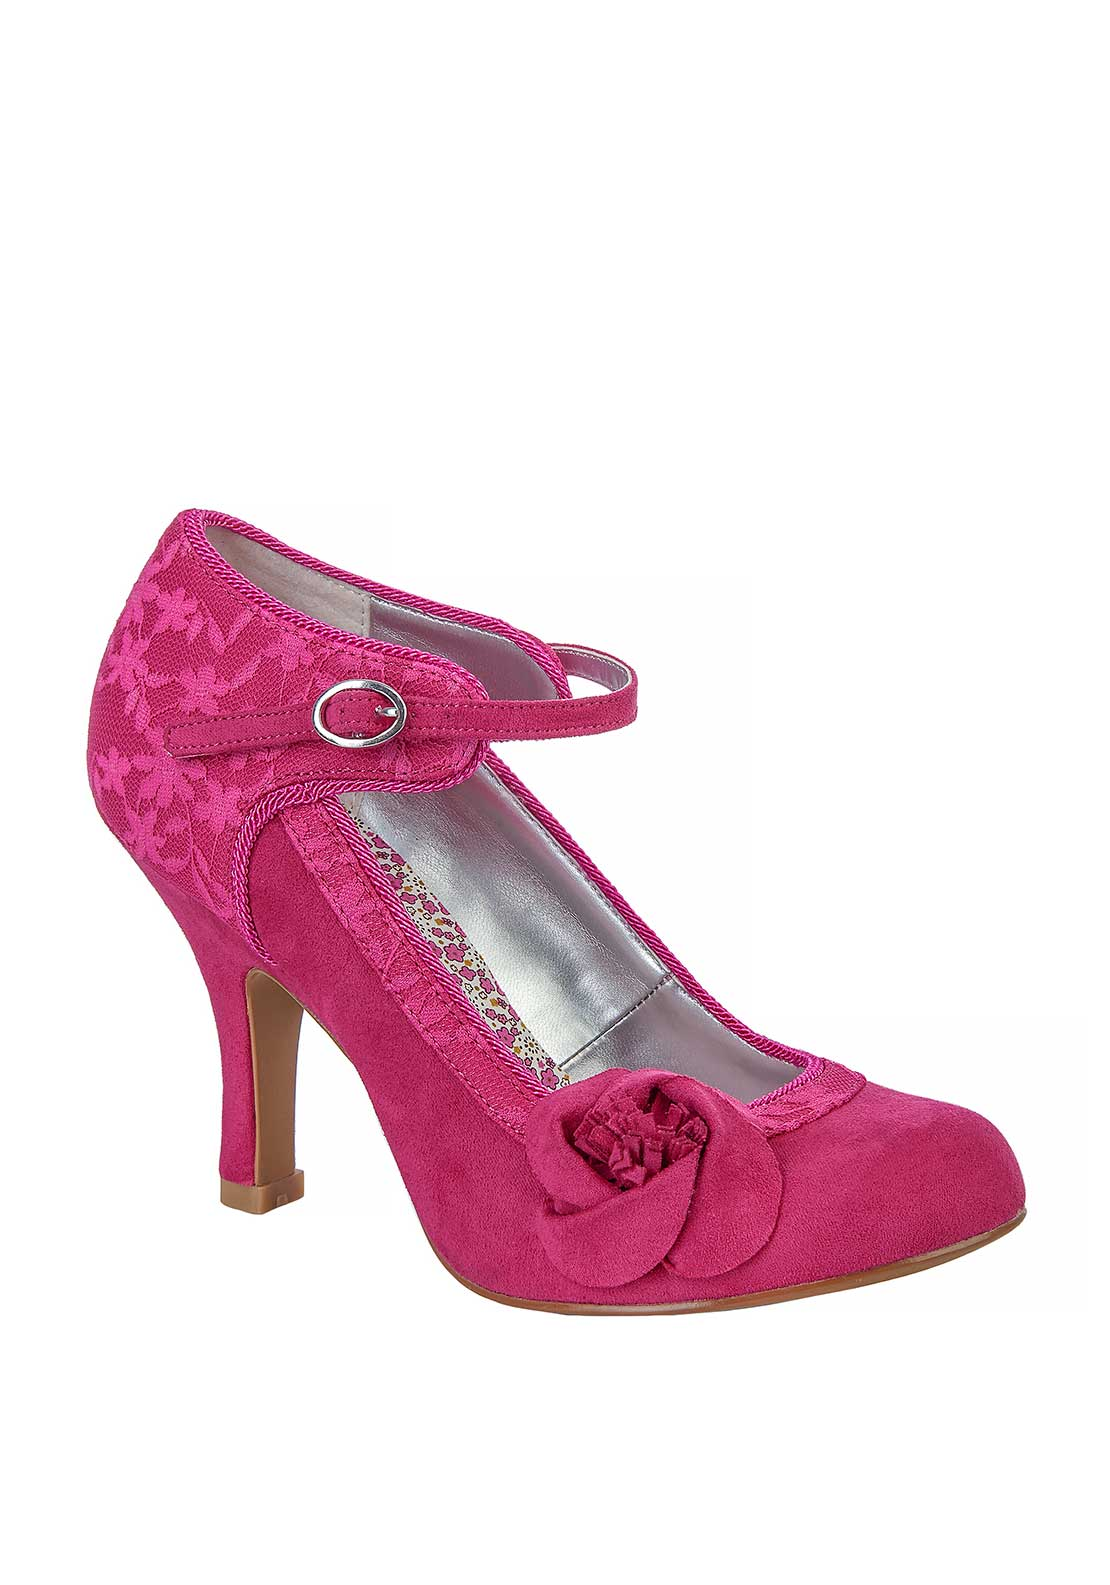 Ruby Shoo Anna Flower Ankle Strap Heeled Shoes, Fuchsia